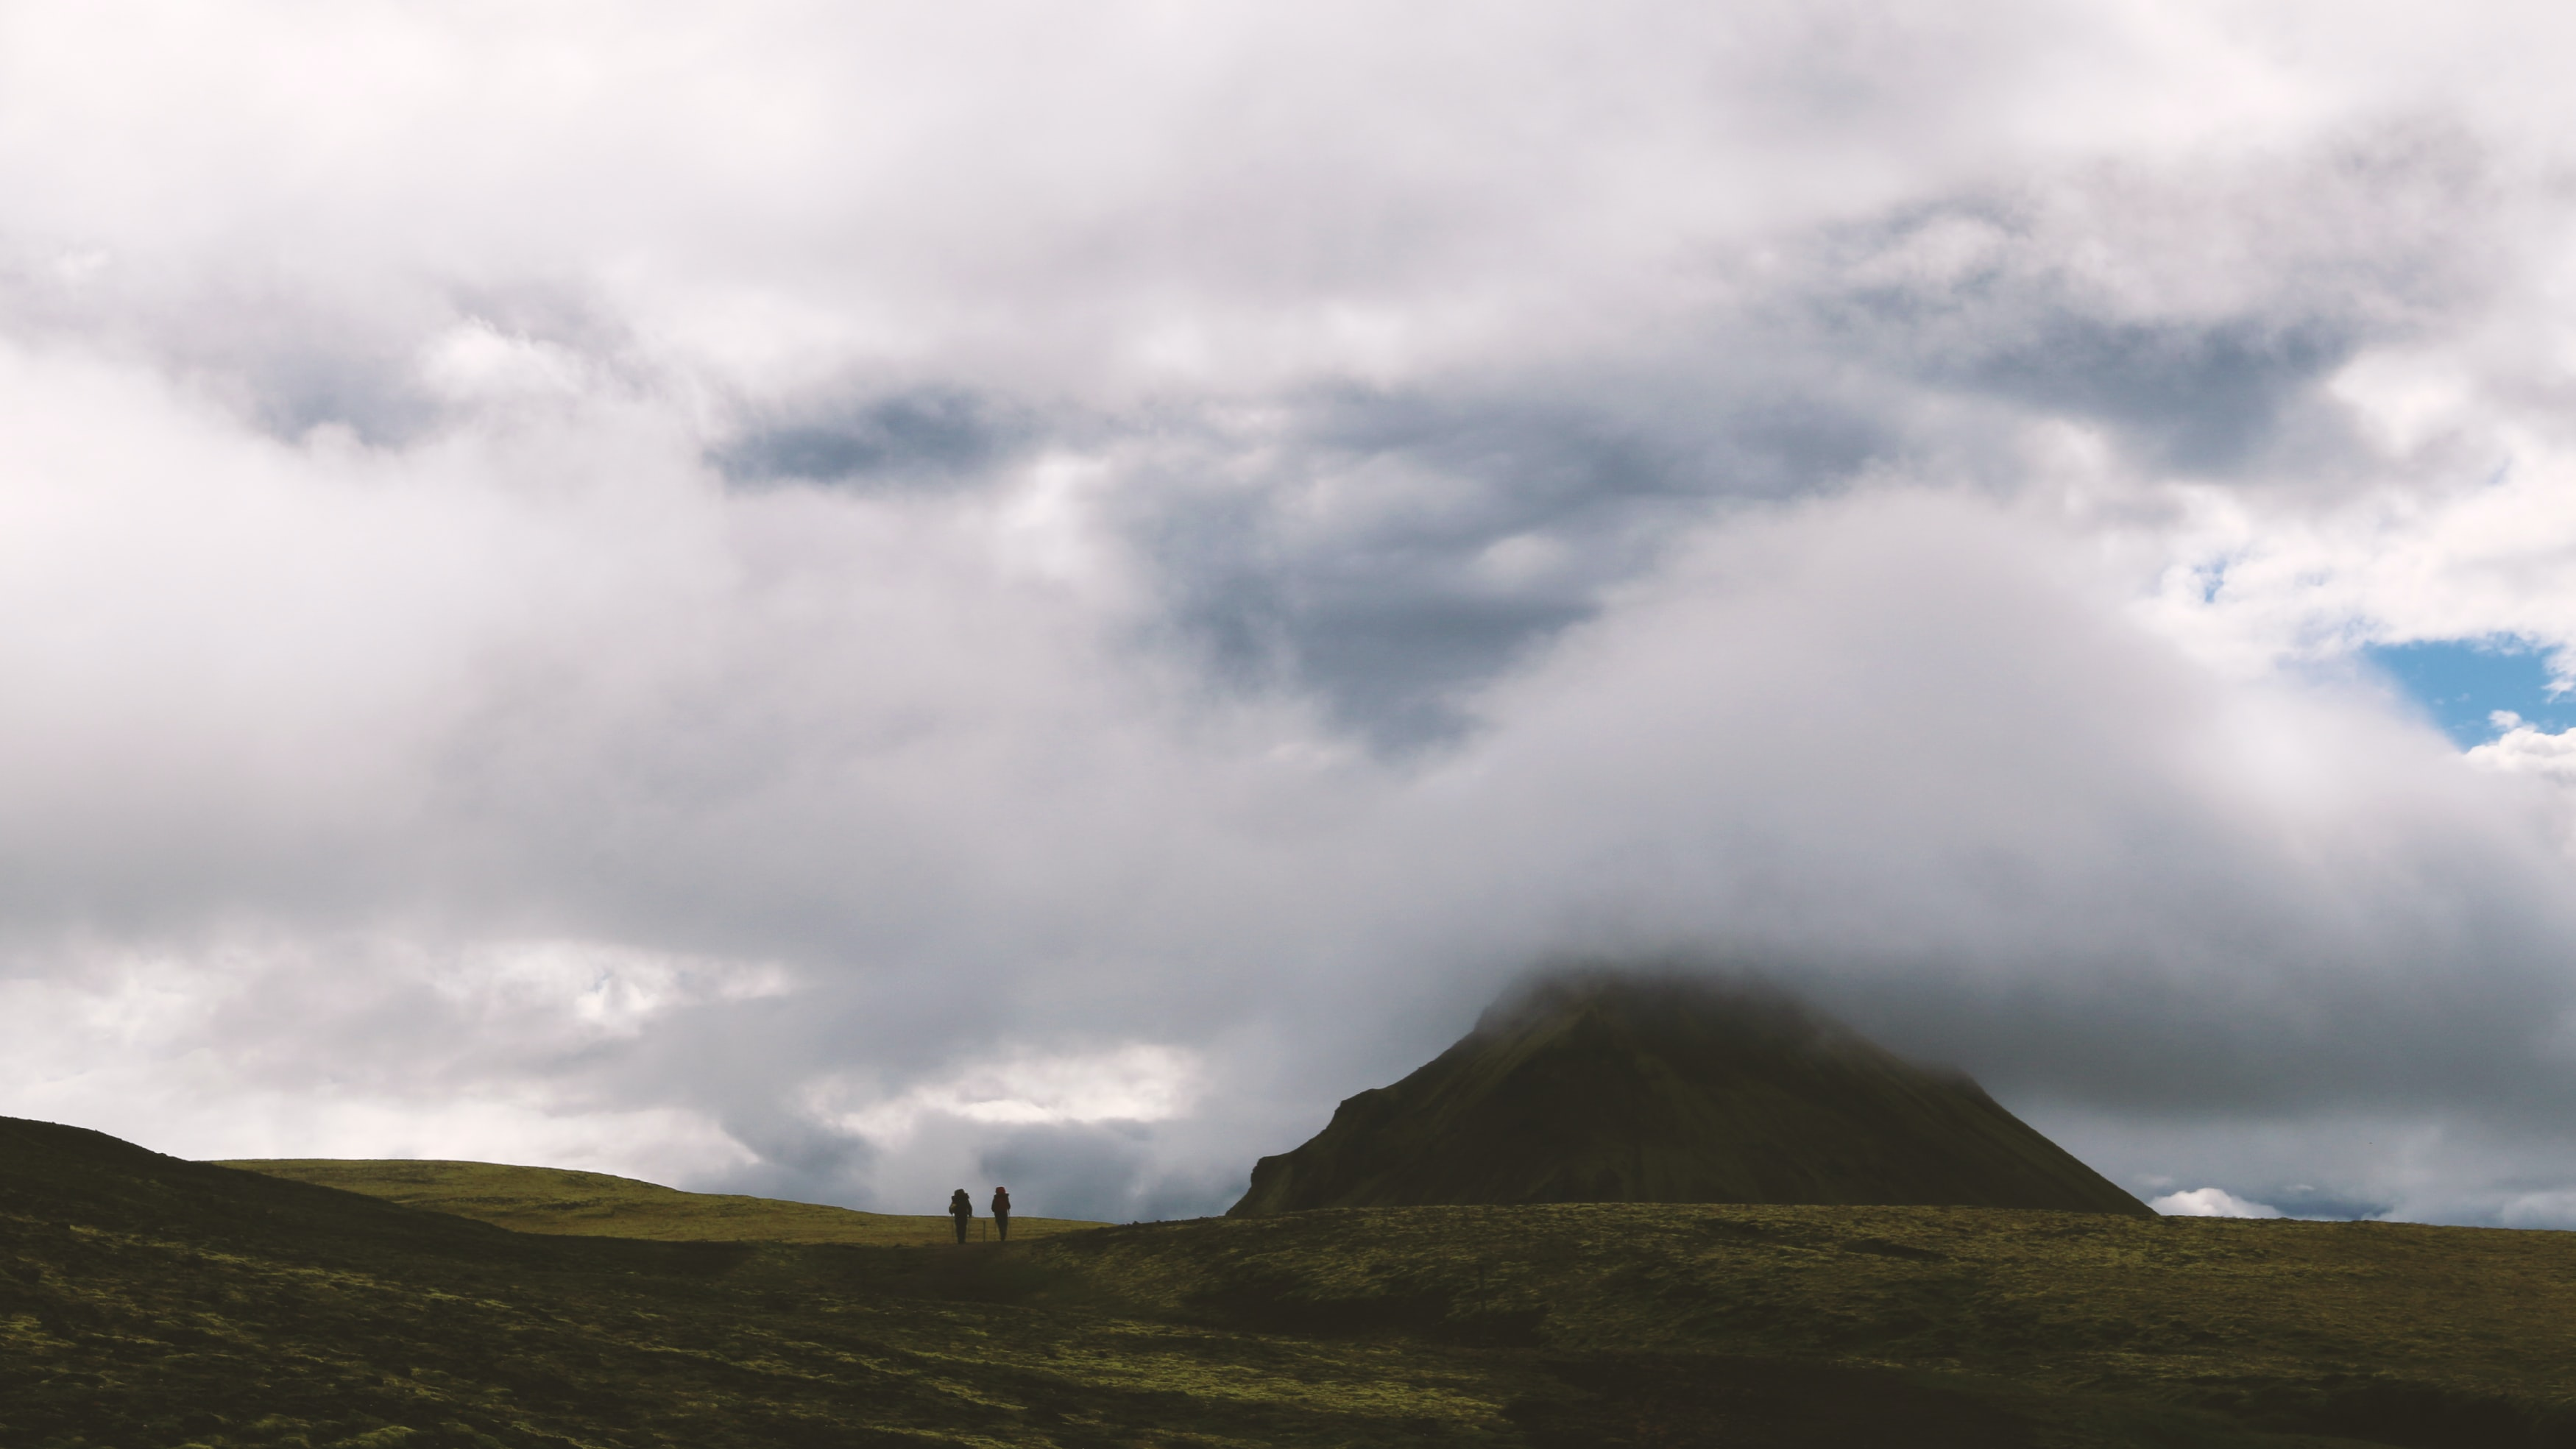 Two people hiking across grassy plain underneath cloudy sky